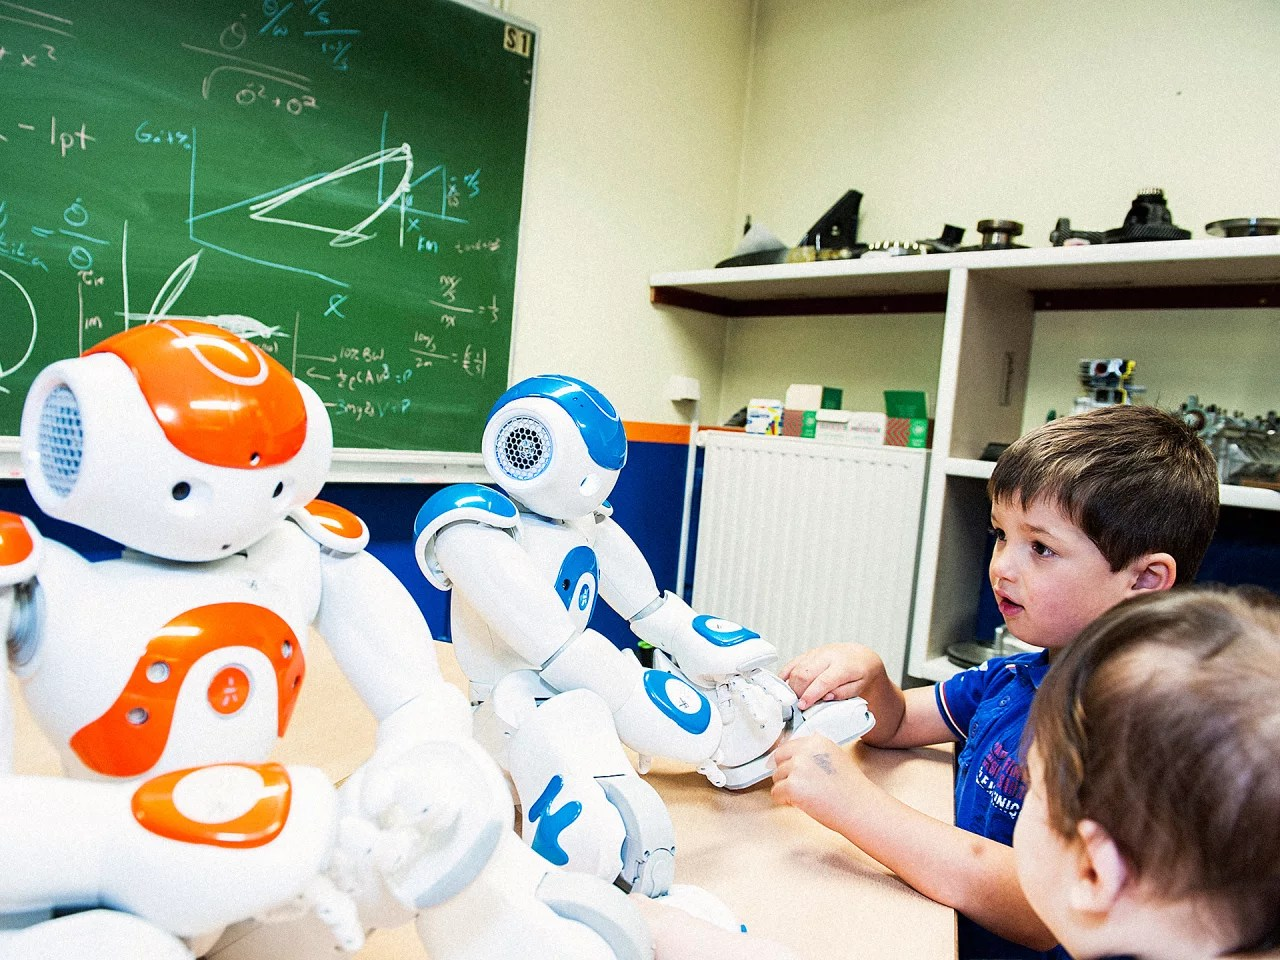 Help Kids Could Robots Help Kids Learn Second Languages Faster